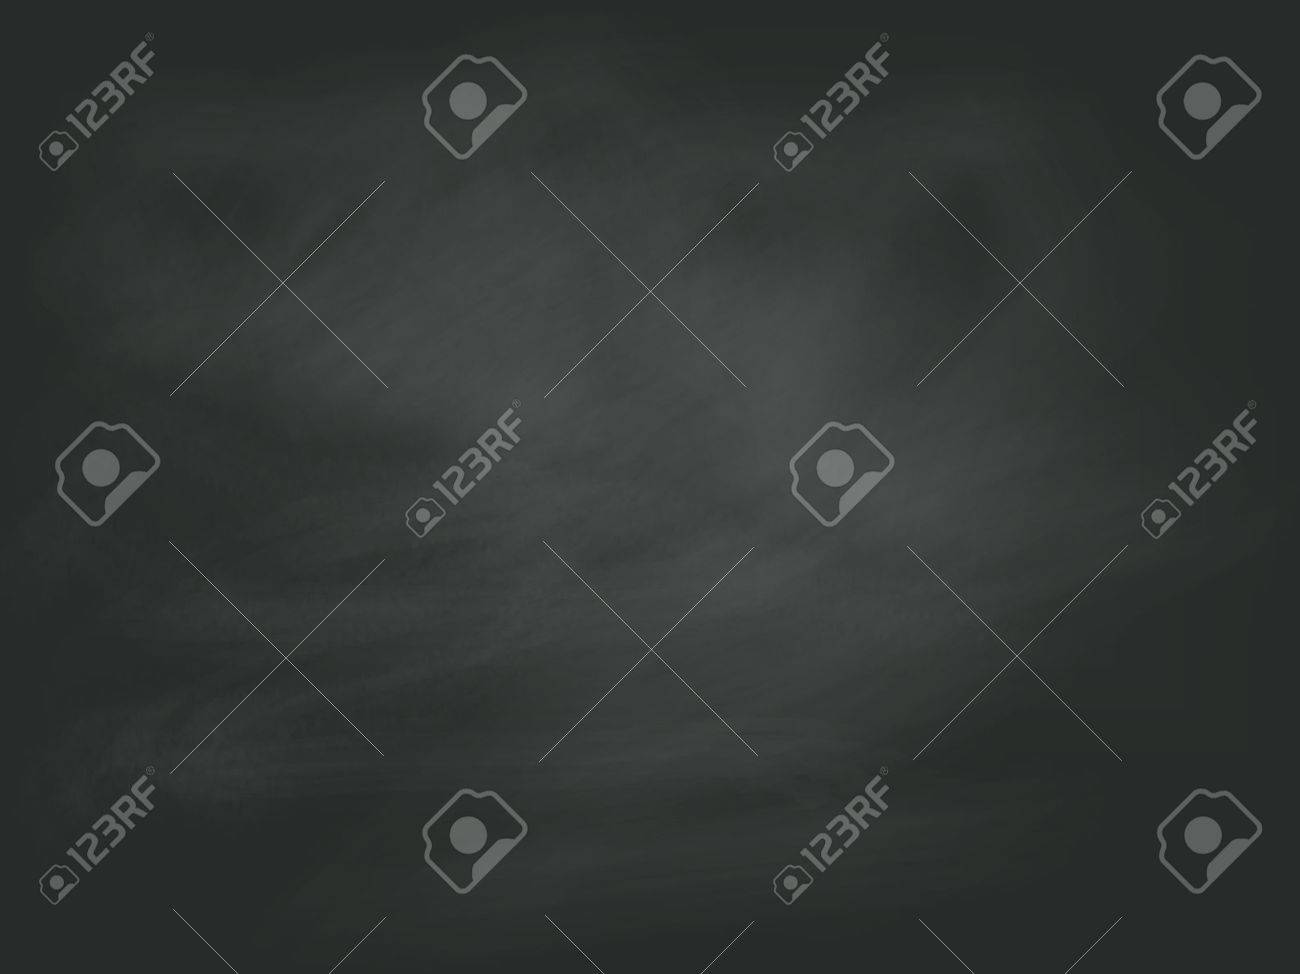 abstract black chalk board background vector - 30750179